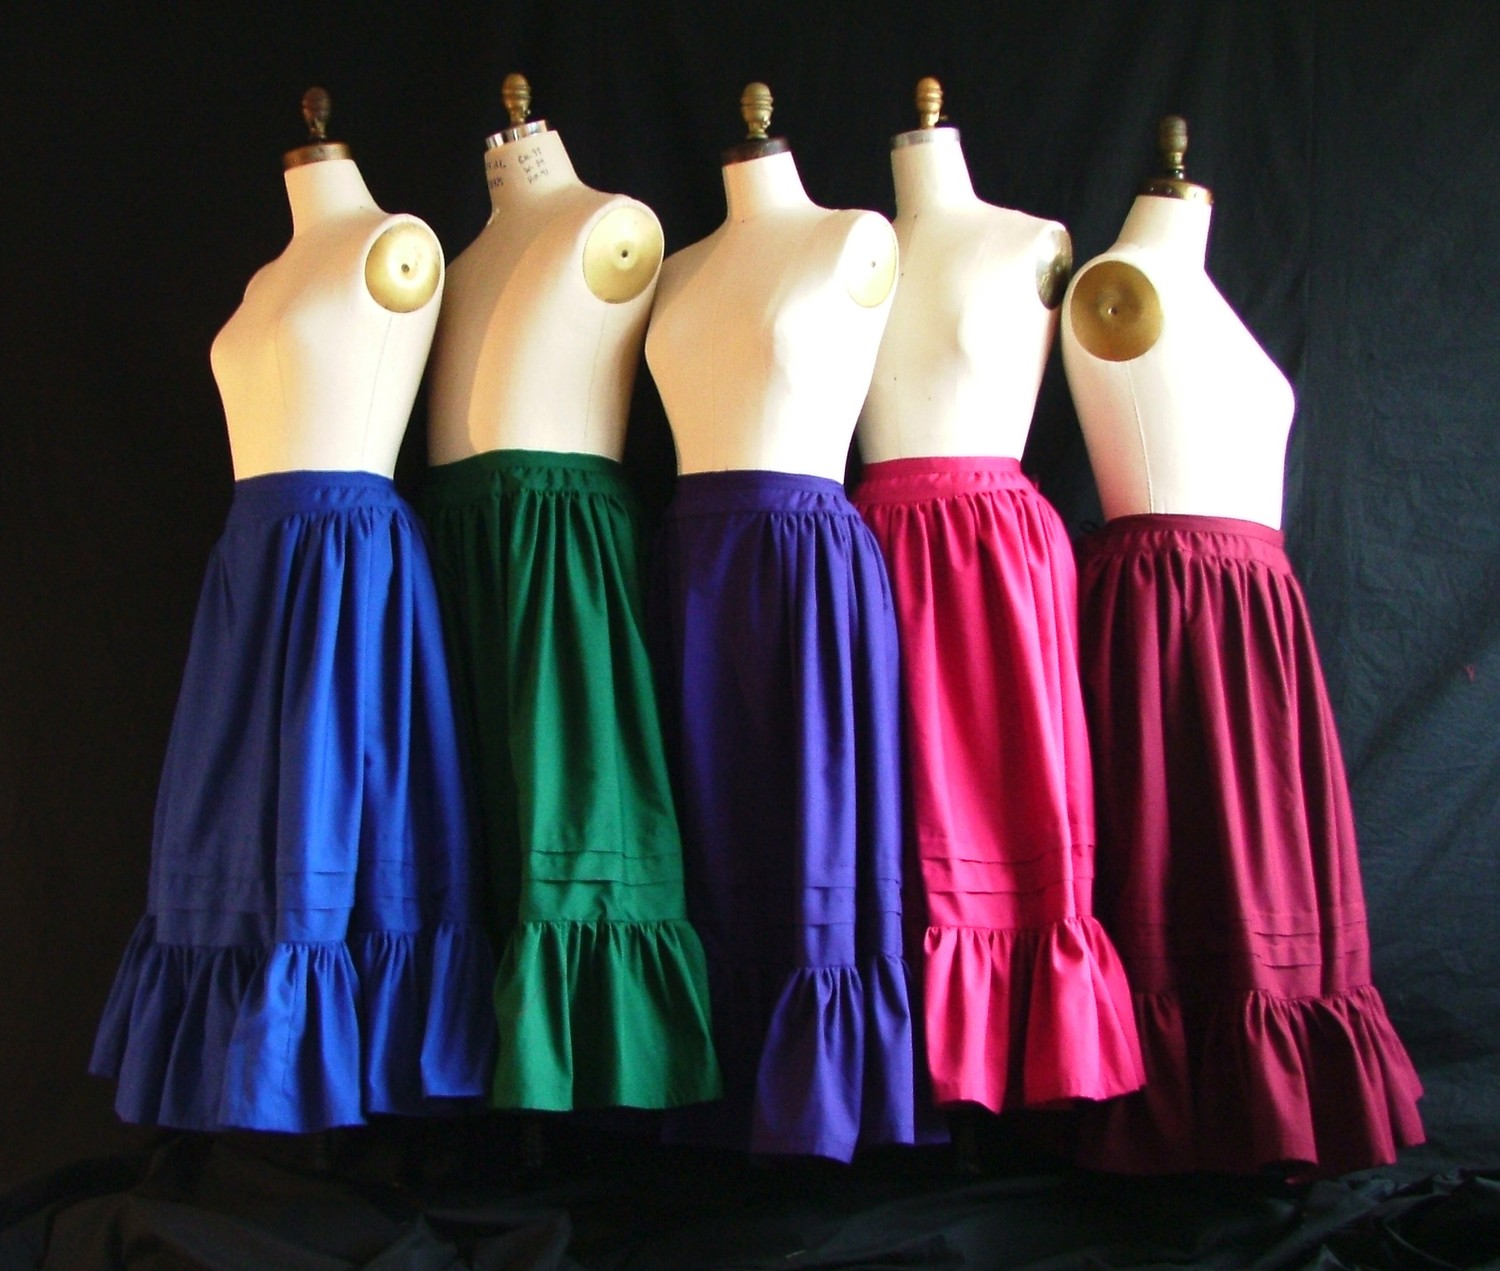 Any of our petticoat styles are available custom made in your own fabrics. Email for questions and details. Shown here, our Peasant Petticoats in a rainbow of Kona Cottons.